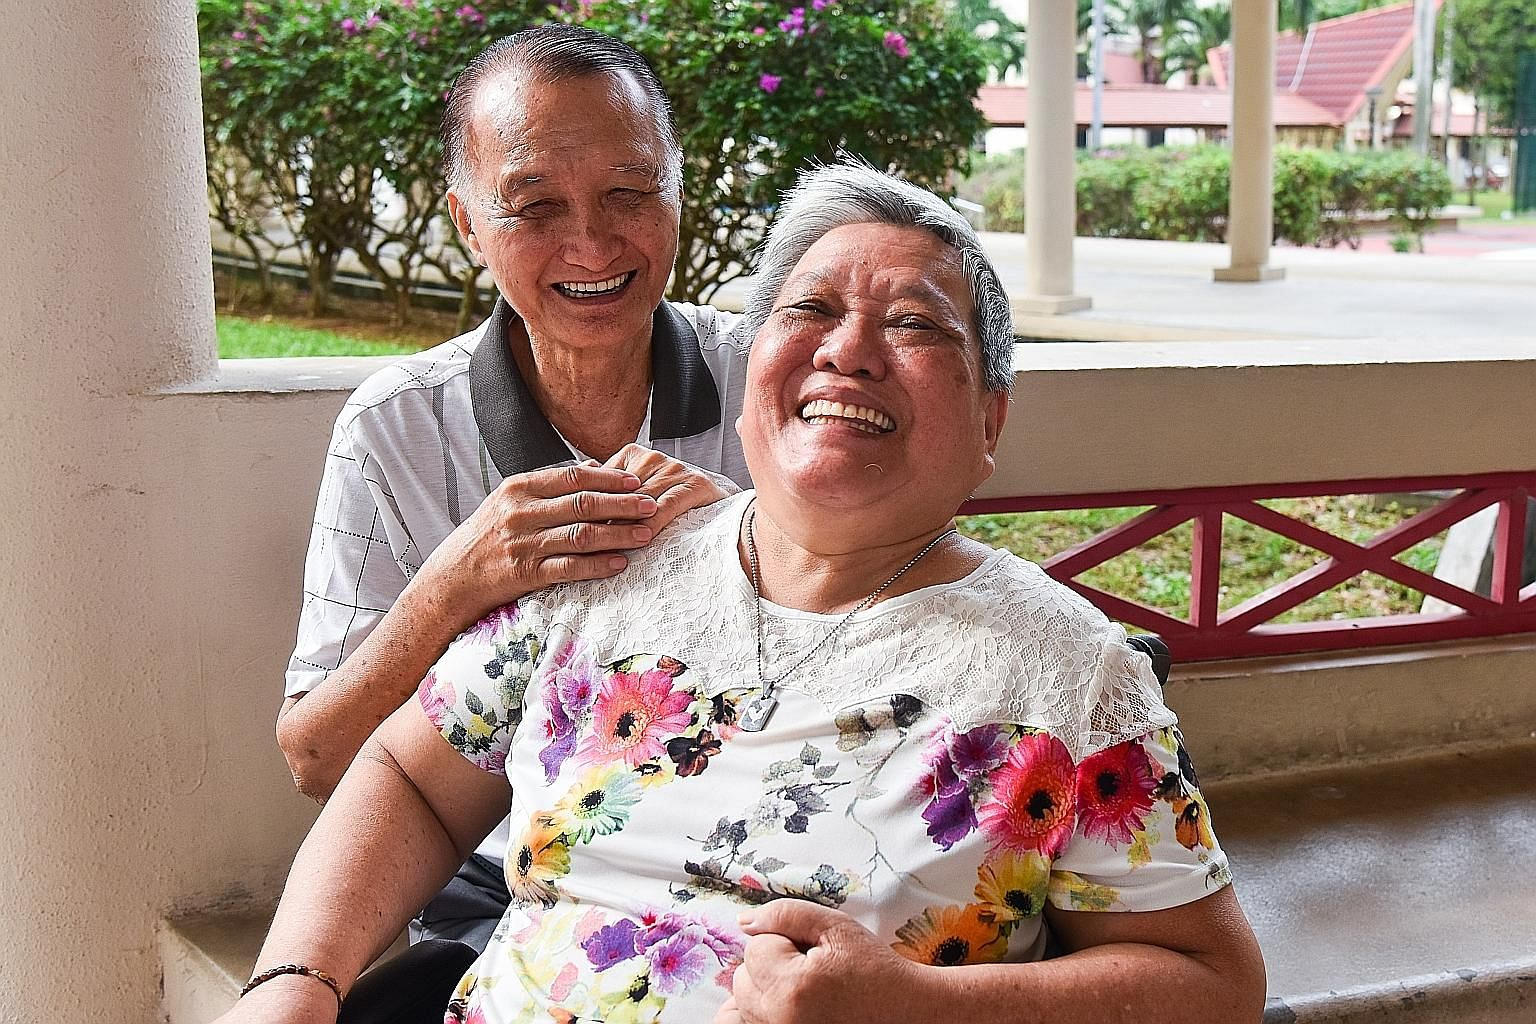 Madam Oei Lian Eng with her husband, Mr Tan Sue Hoai, who is her caregiver. Shesuffered a stroke which left her paralysed on her left side.